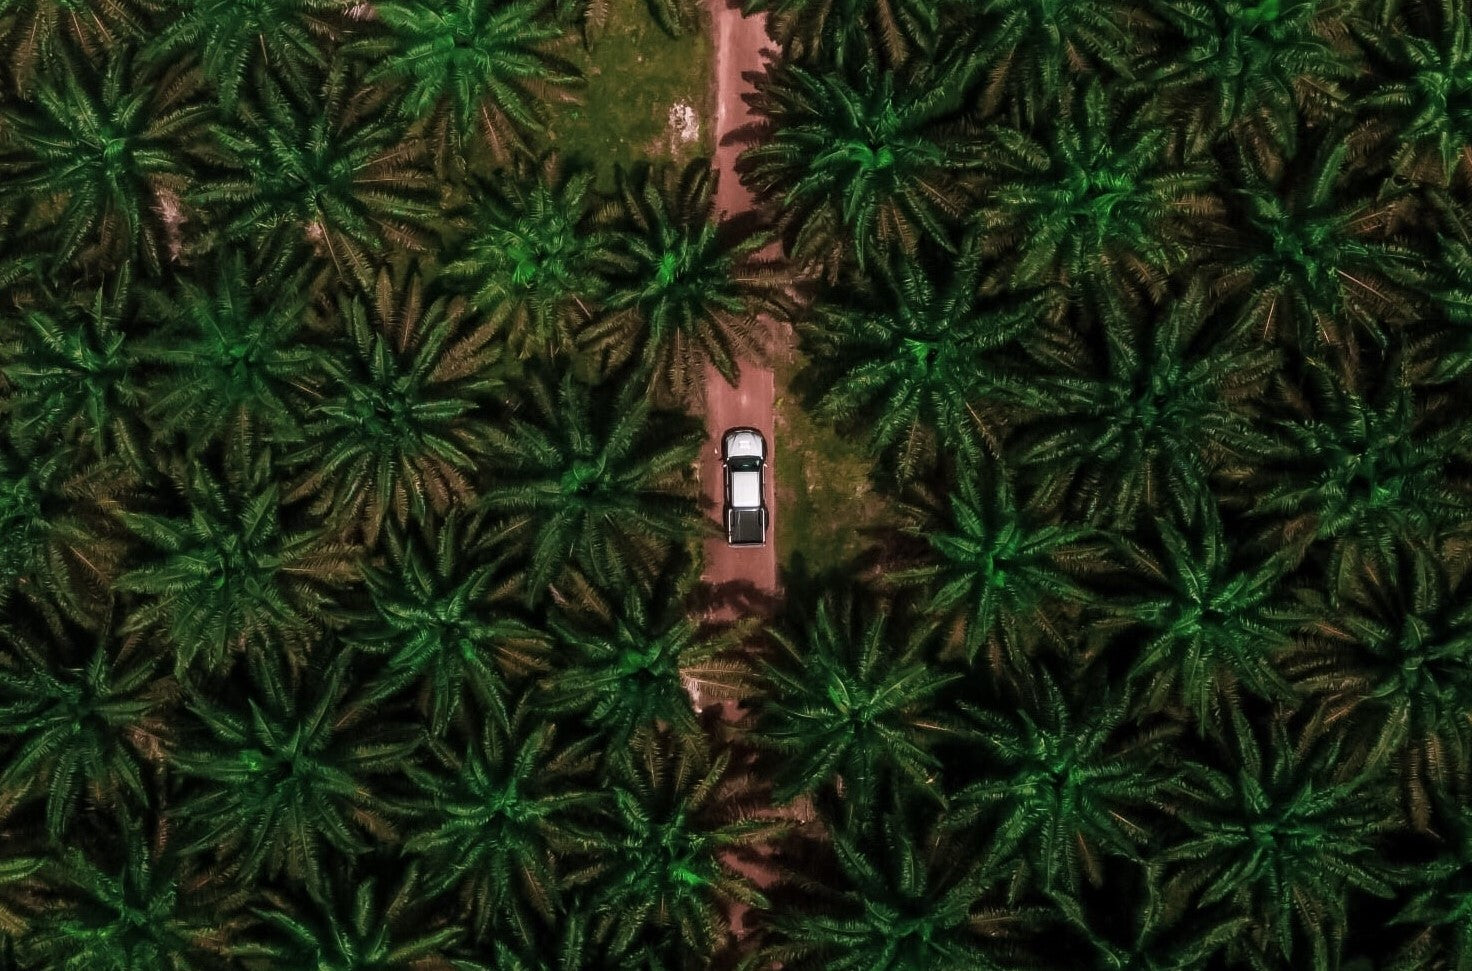 Palm oil trees from aerial view. A car drives through centre road.